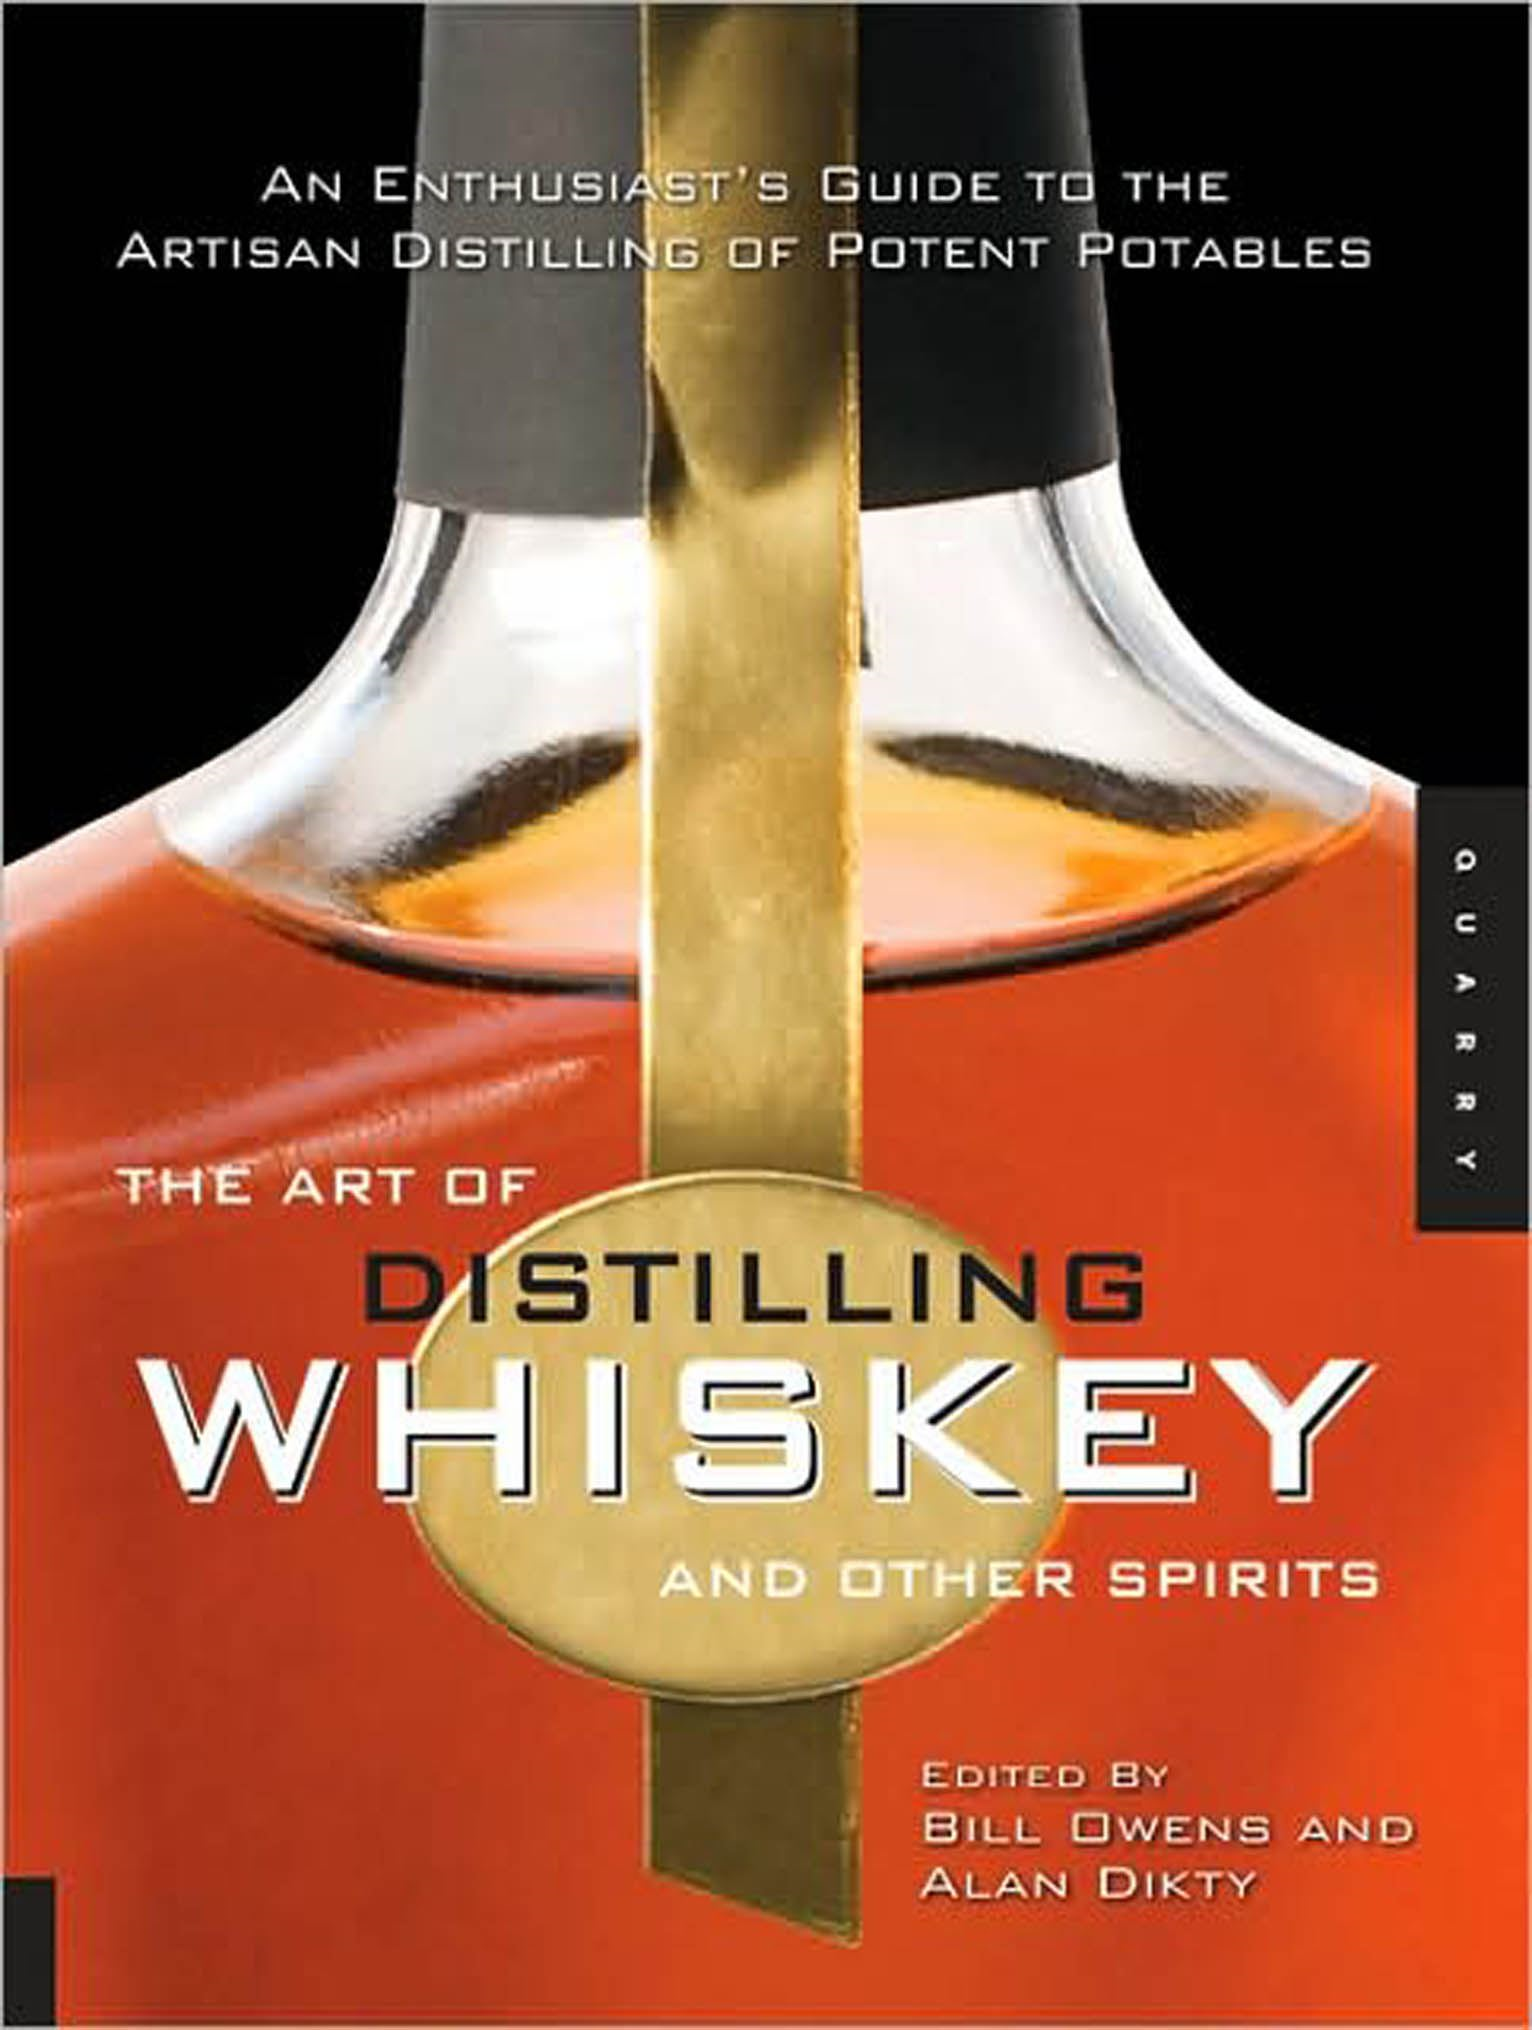 The Art of Distilling Whiskey and Other Spirits: An Enthusiast's Guide to the Artisan Distilling of Potent Potables By: Bill Owens,Alan Dikty,Fritz Maytag